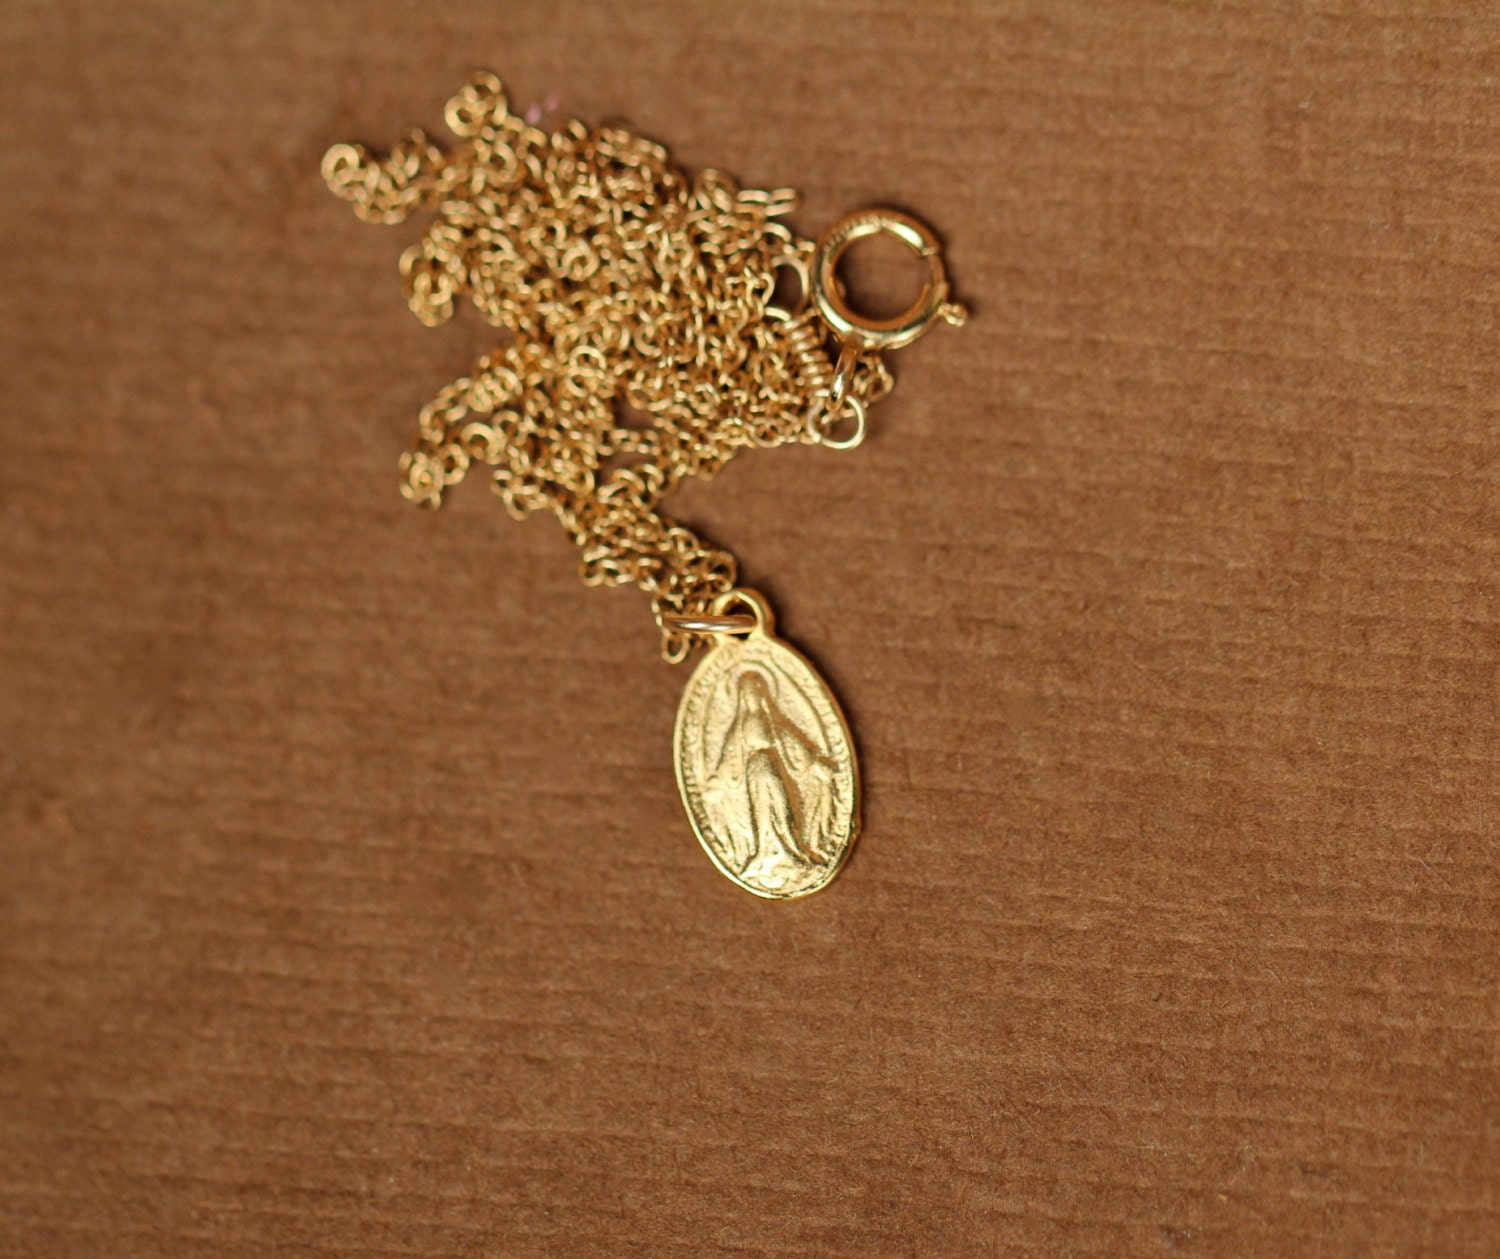 Virgin mary necklace religious necklace catholic necklace a